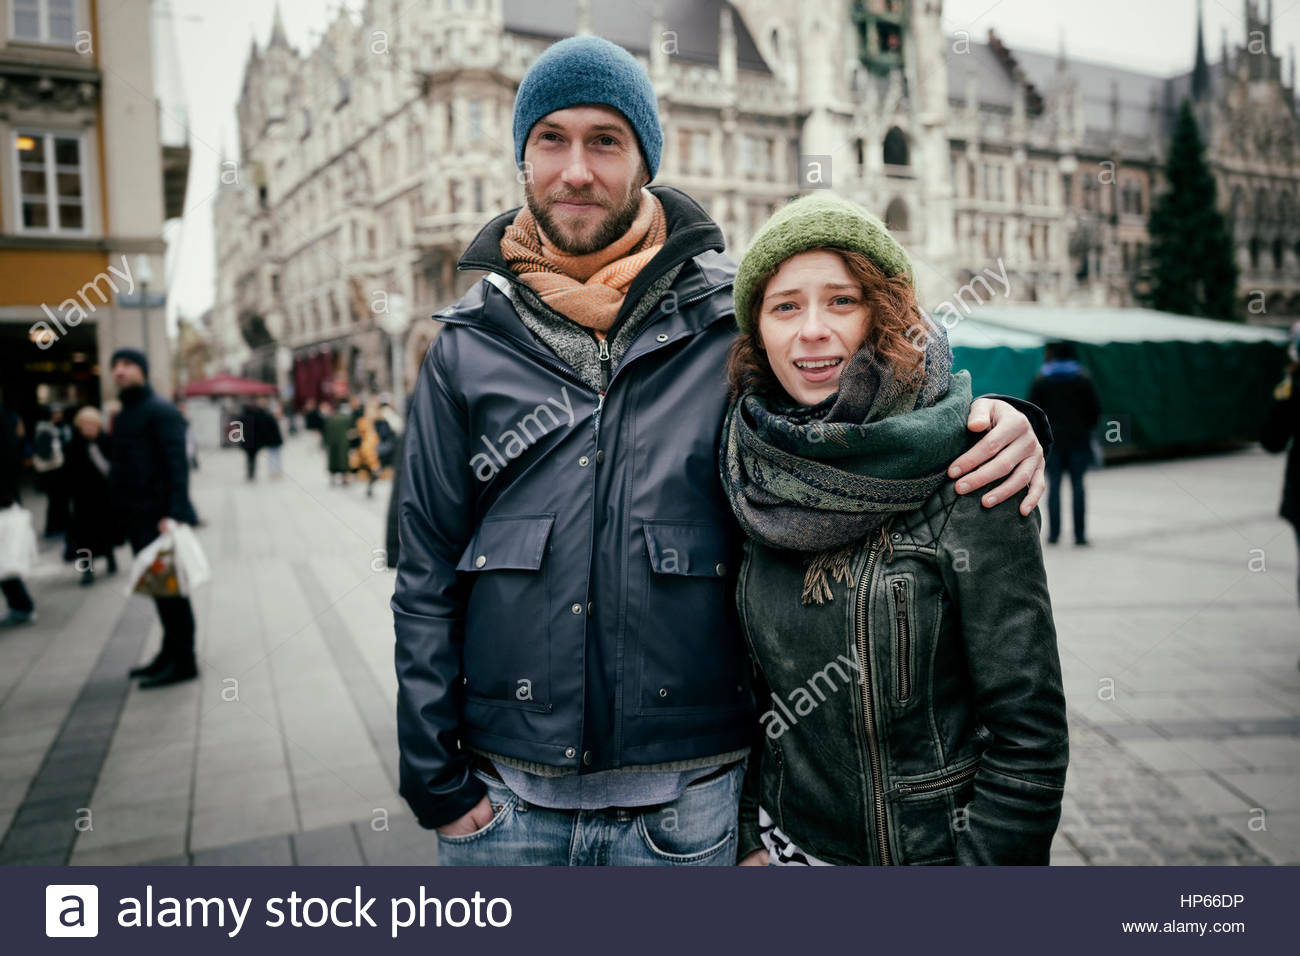 Young heterosexual couple sightseeing city tour - Stock Image